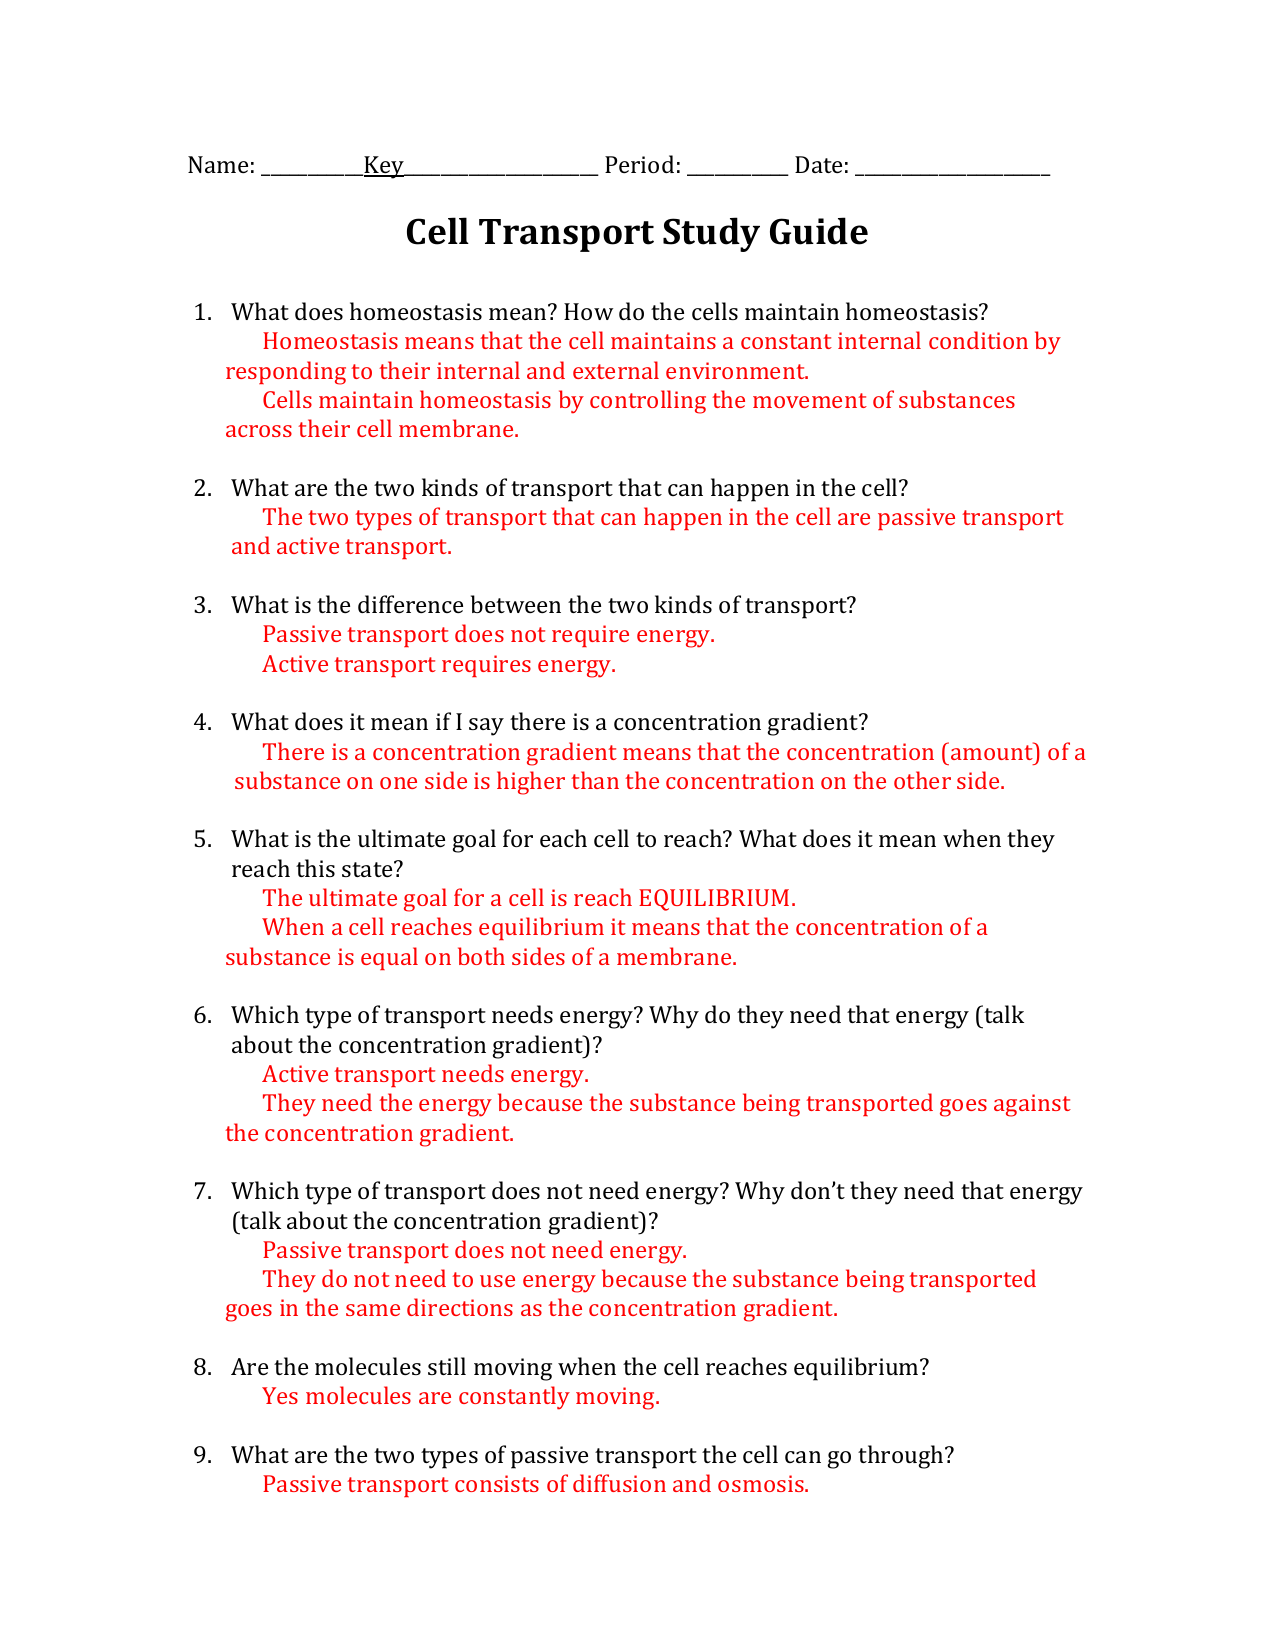 worksheet Passive And Active Transport Worksheet cell transport study guide answers